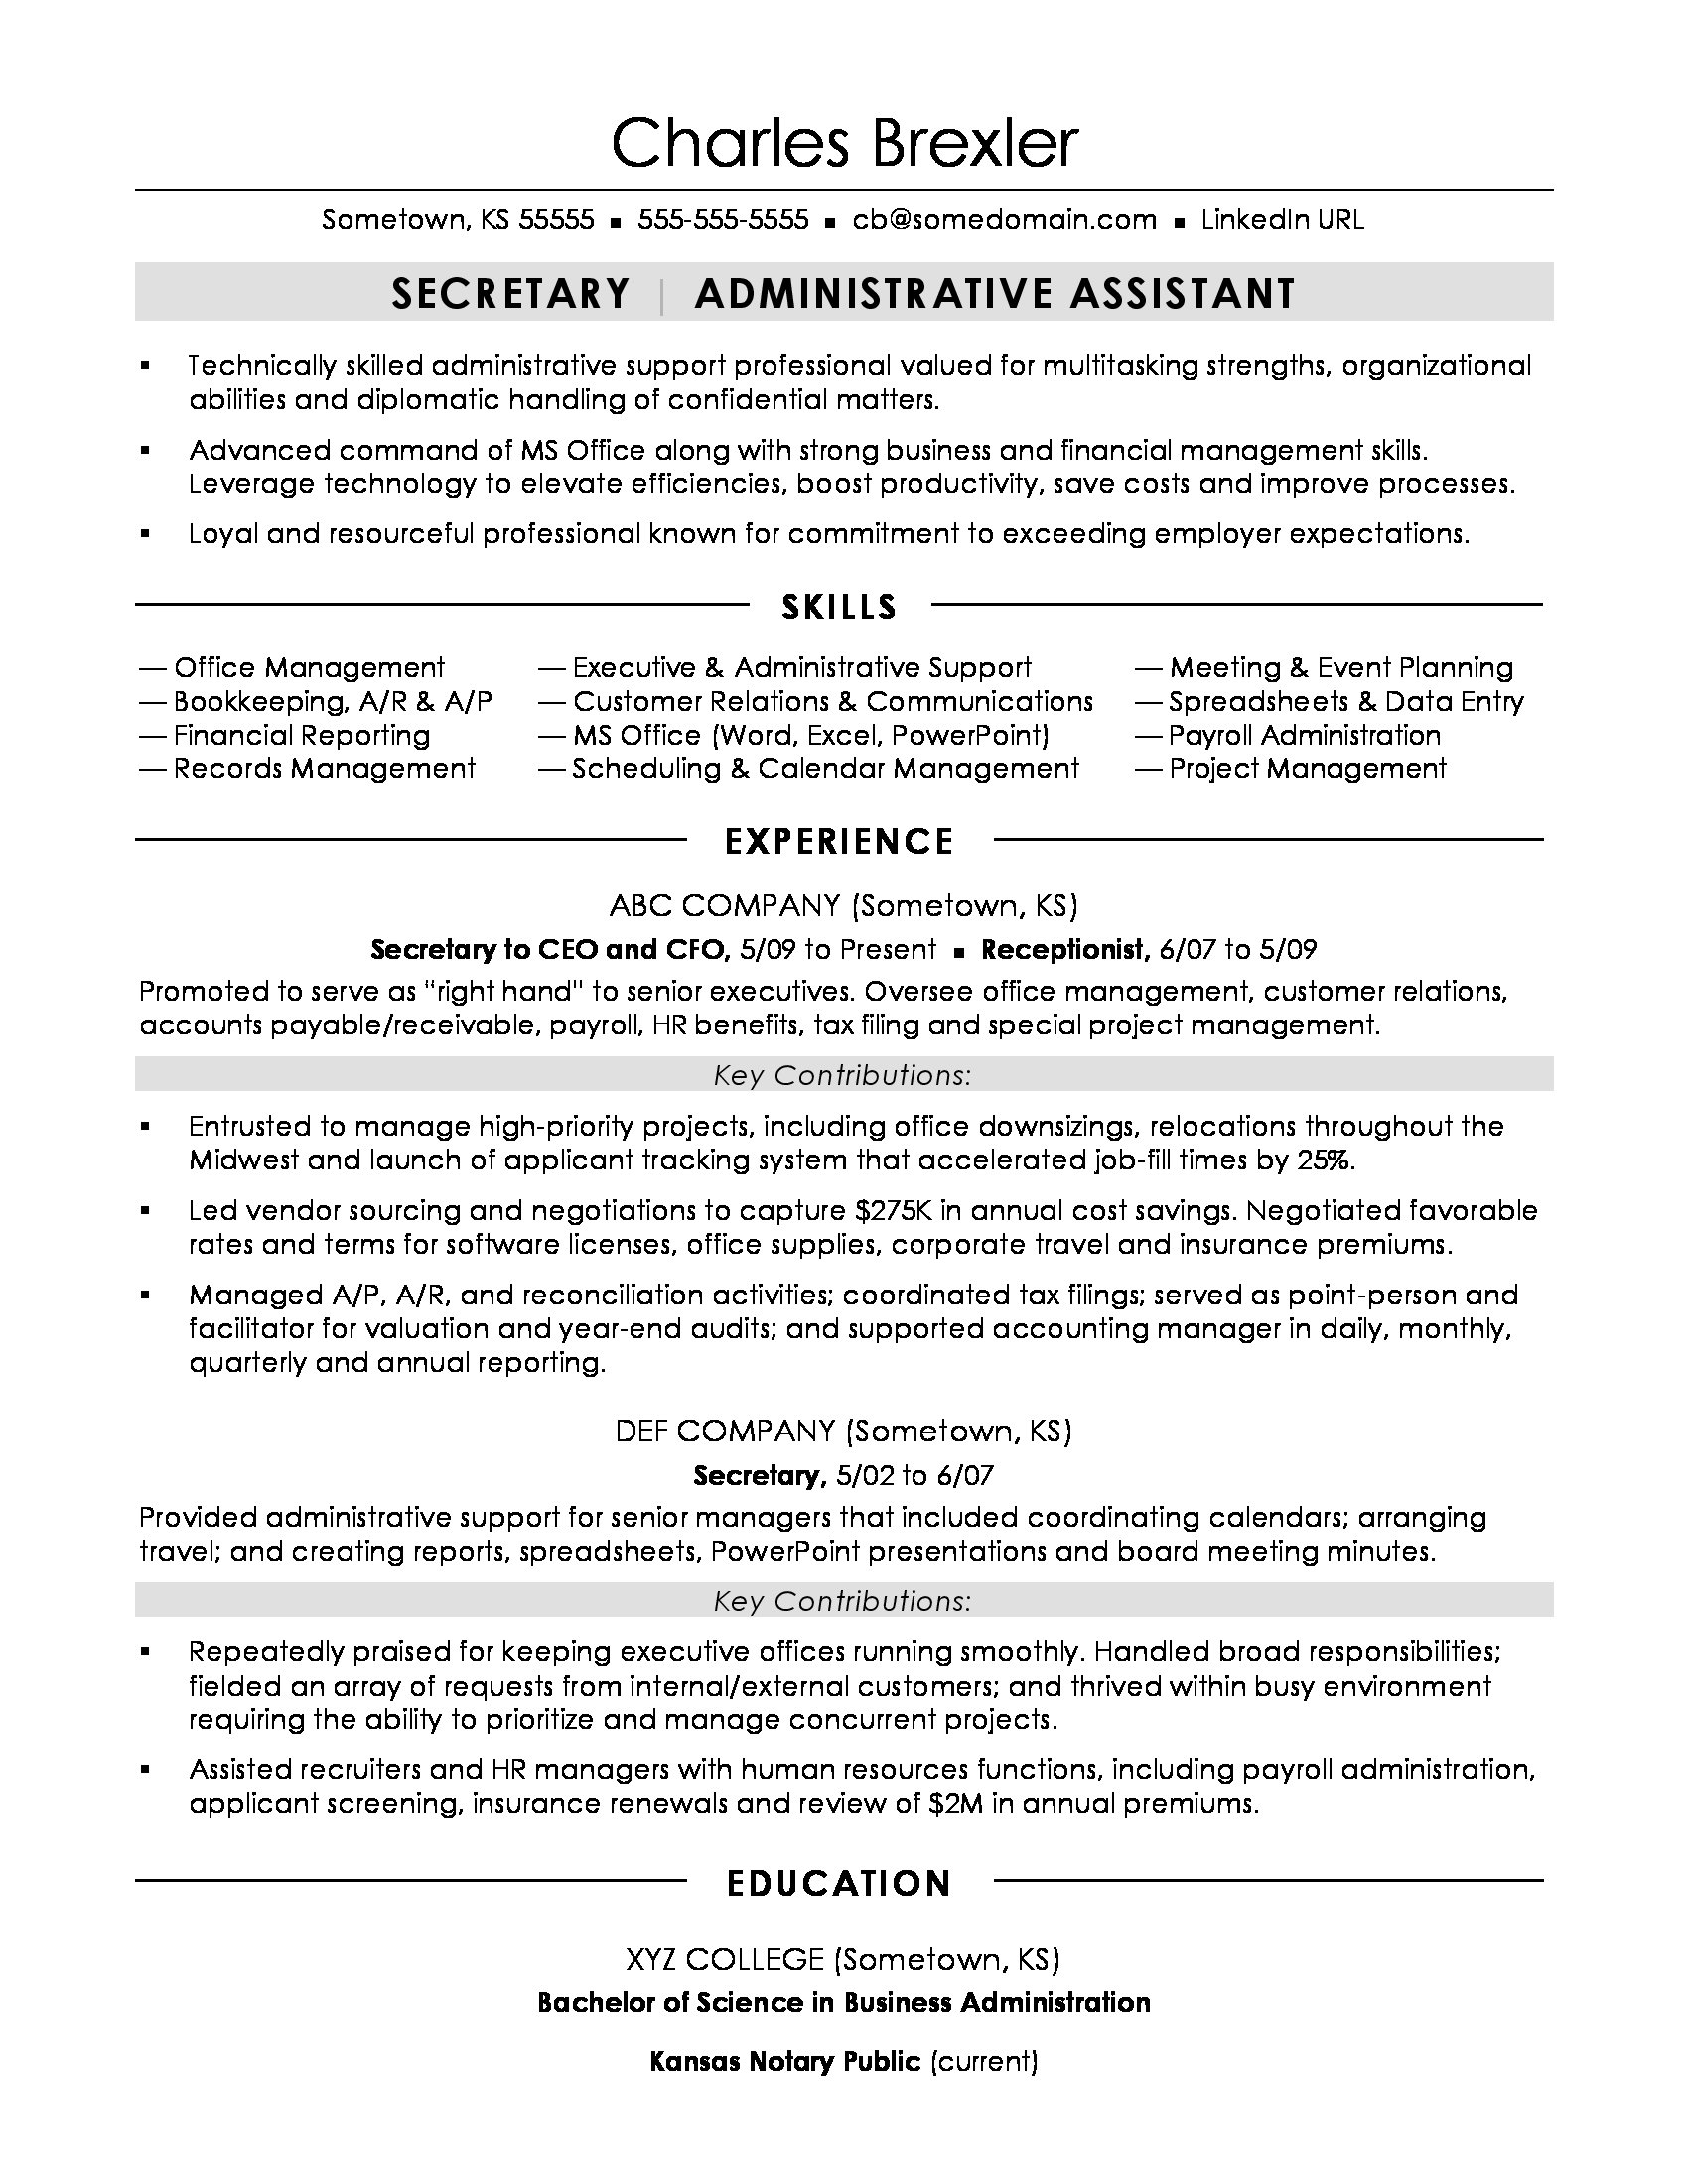 Secretary Resume Sample | Monster com